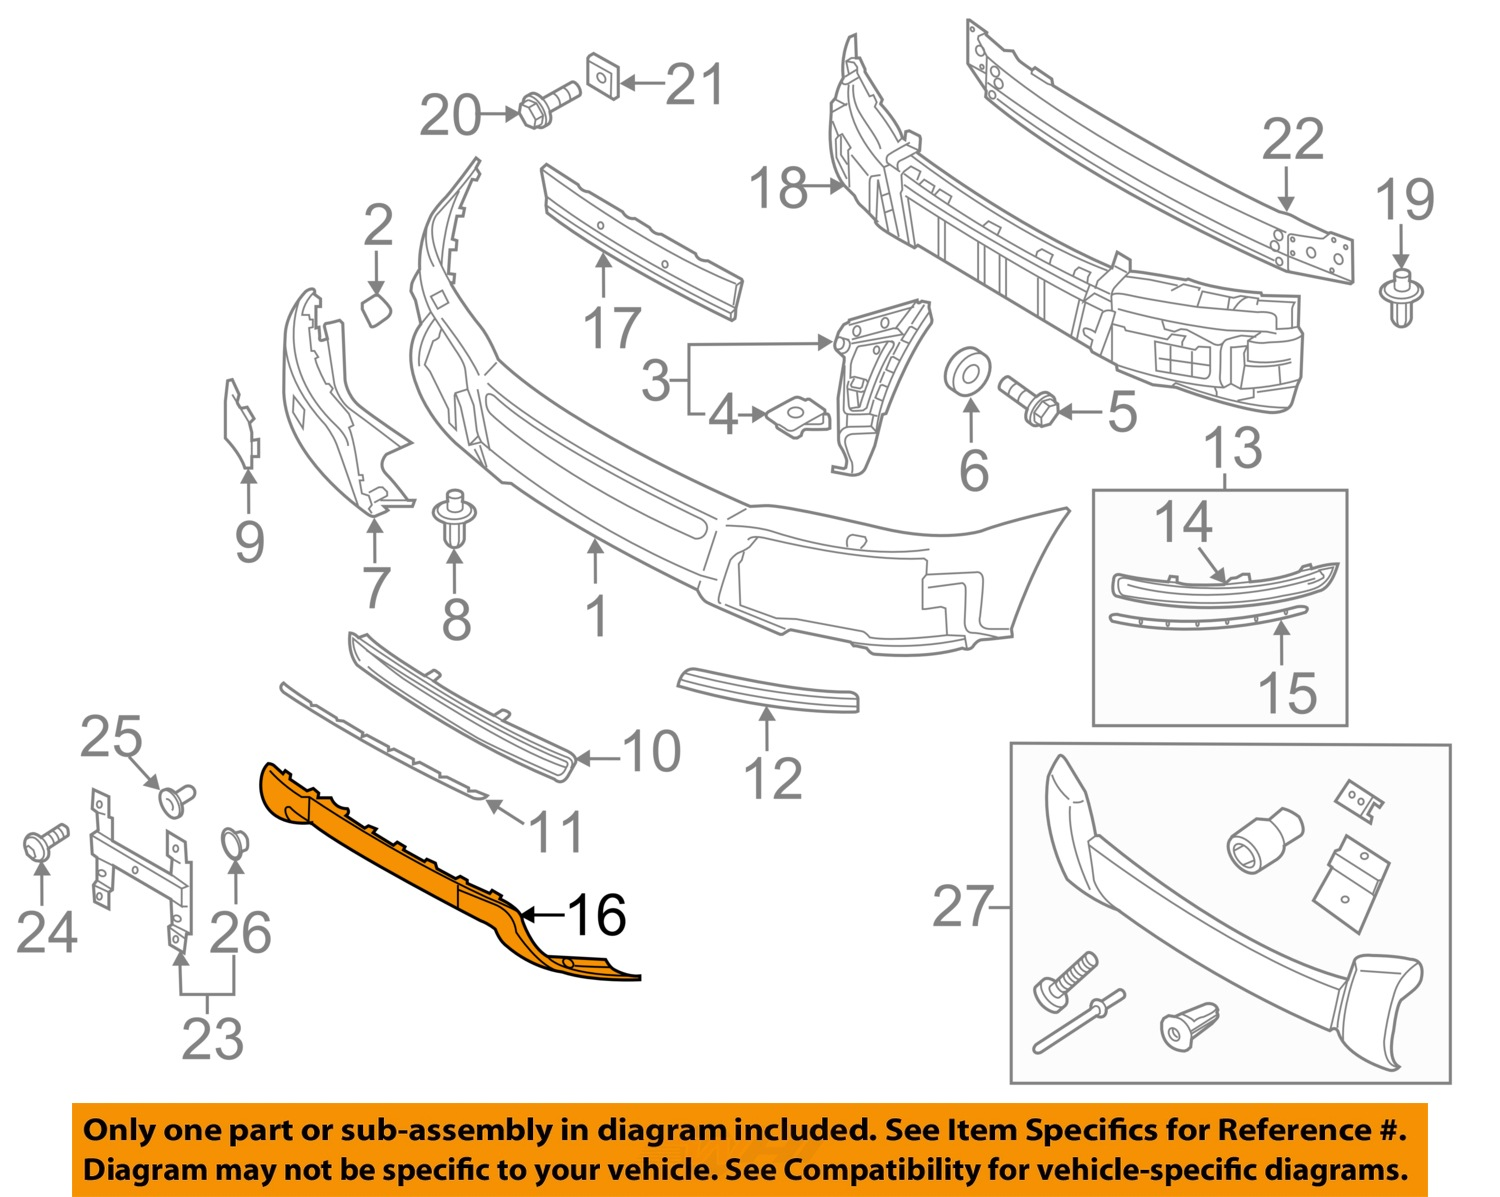 volvo penta 280 outdrive diagram beretta m9 parts ke  wiring for free